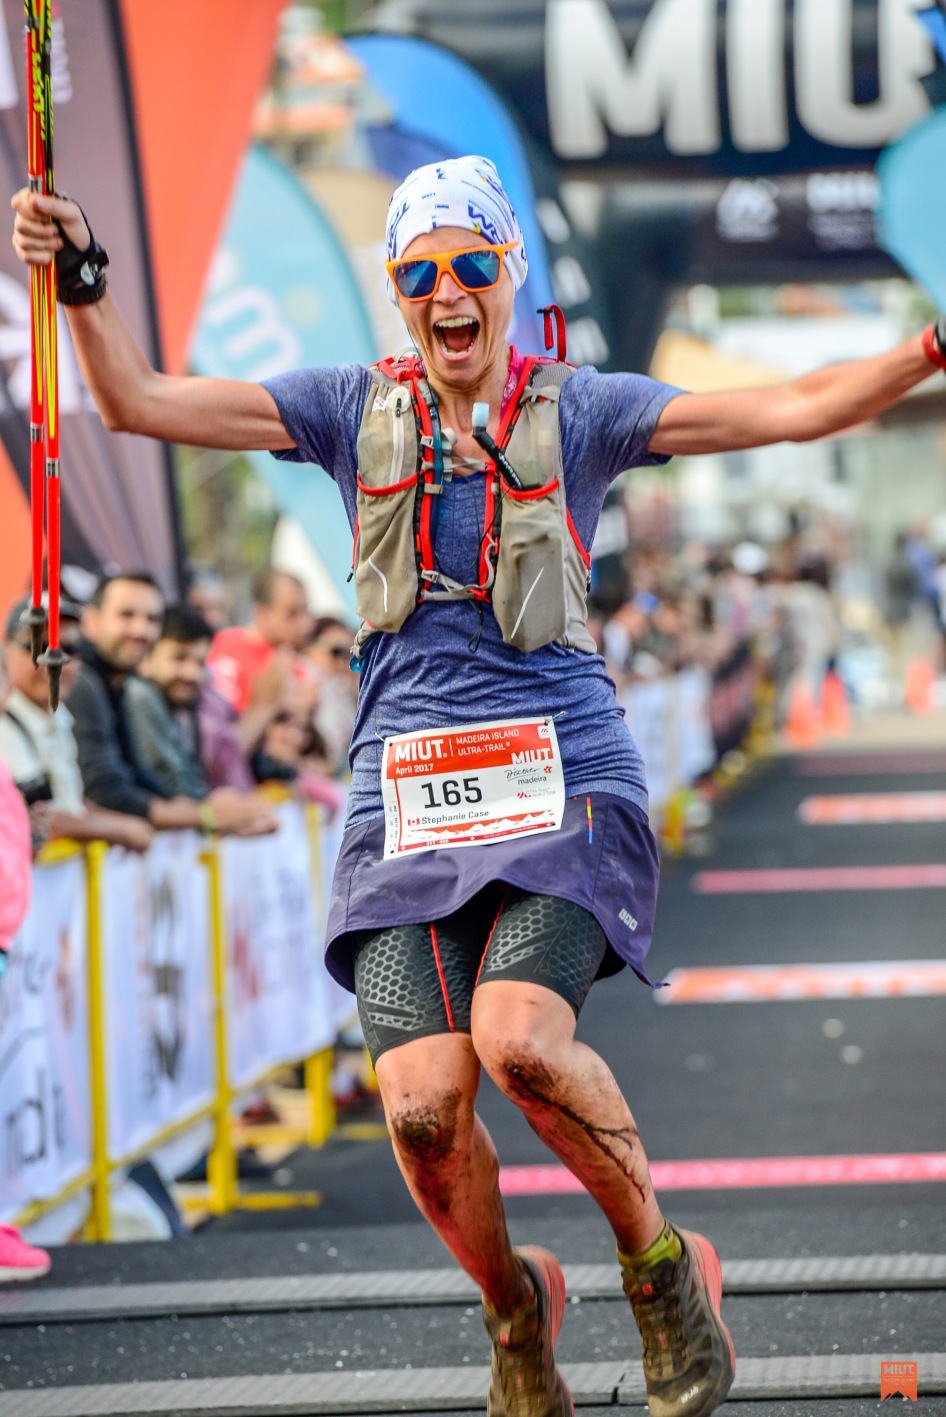 2017-04-21-madeira-island-ultra-trail-2017-finish-line-madeira-island-ultra-trail-2017-3043210-47153-6443